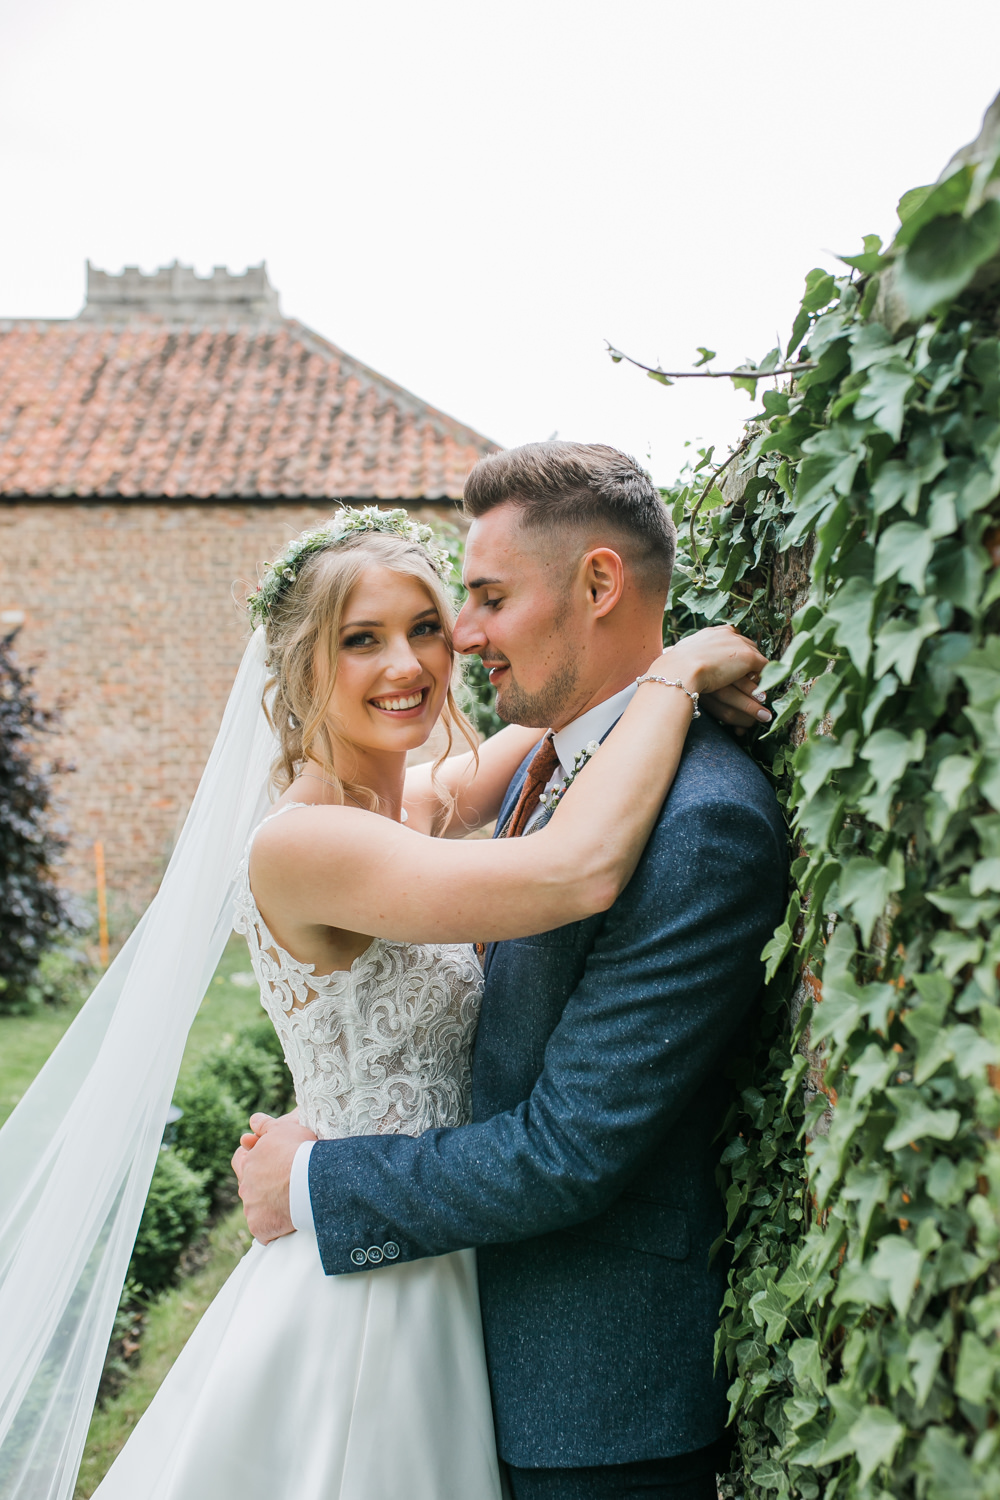 Bride Bridal V Neck A Line Dress Gown Lace Edged Veil Flower Crown Tweed Suit Groom Lincolnshire Tipi Wedding Jessy Jones Photography